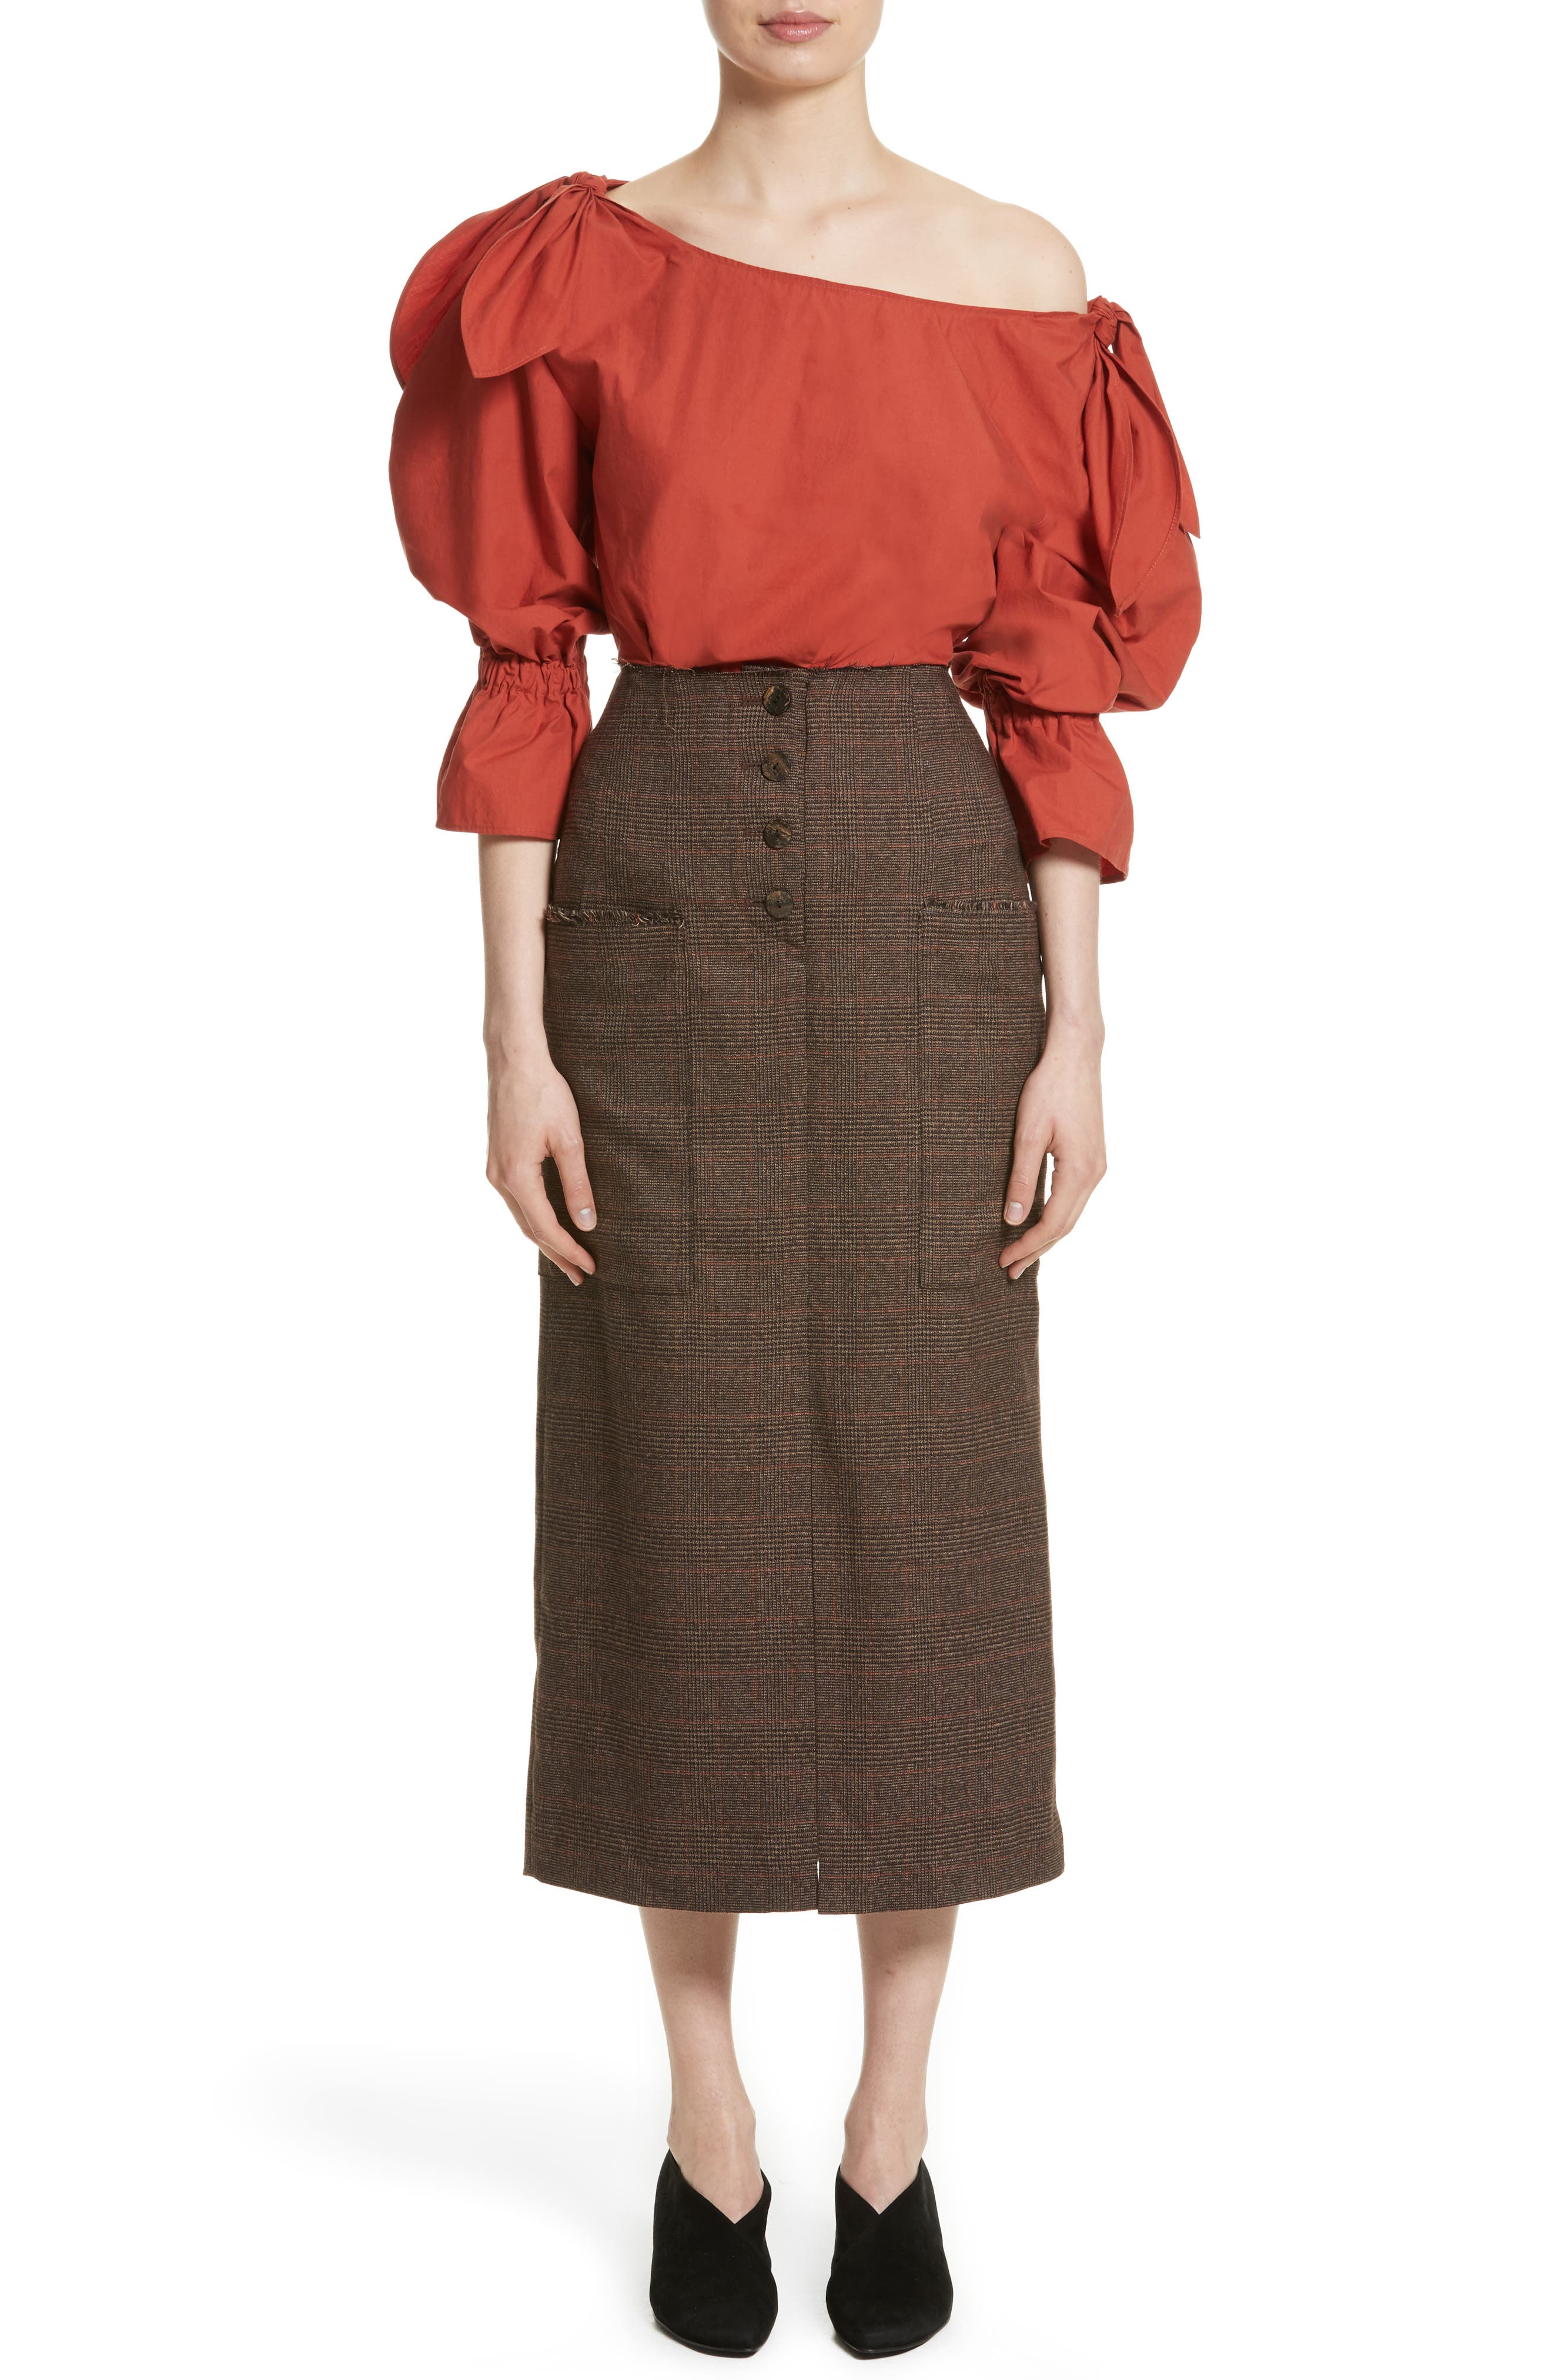 Michelle One-Shoulder Puff Sleeve Blouse,                             Alternate thumbnail 8, color,                             Rust